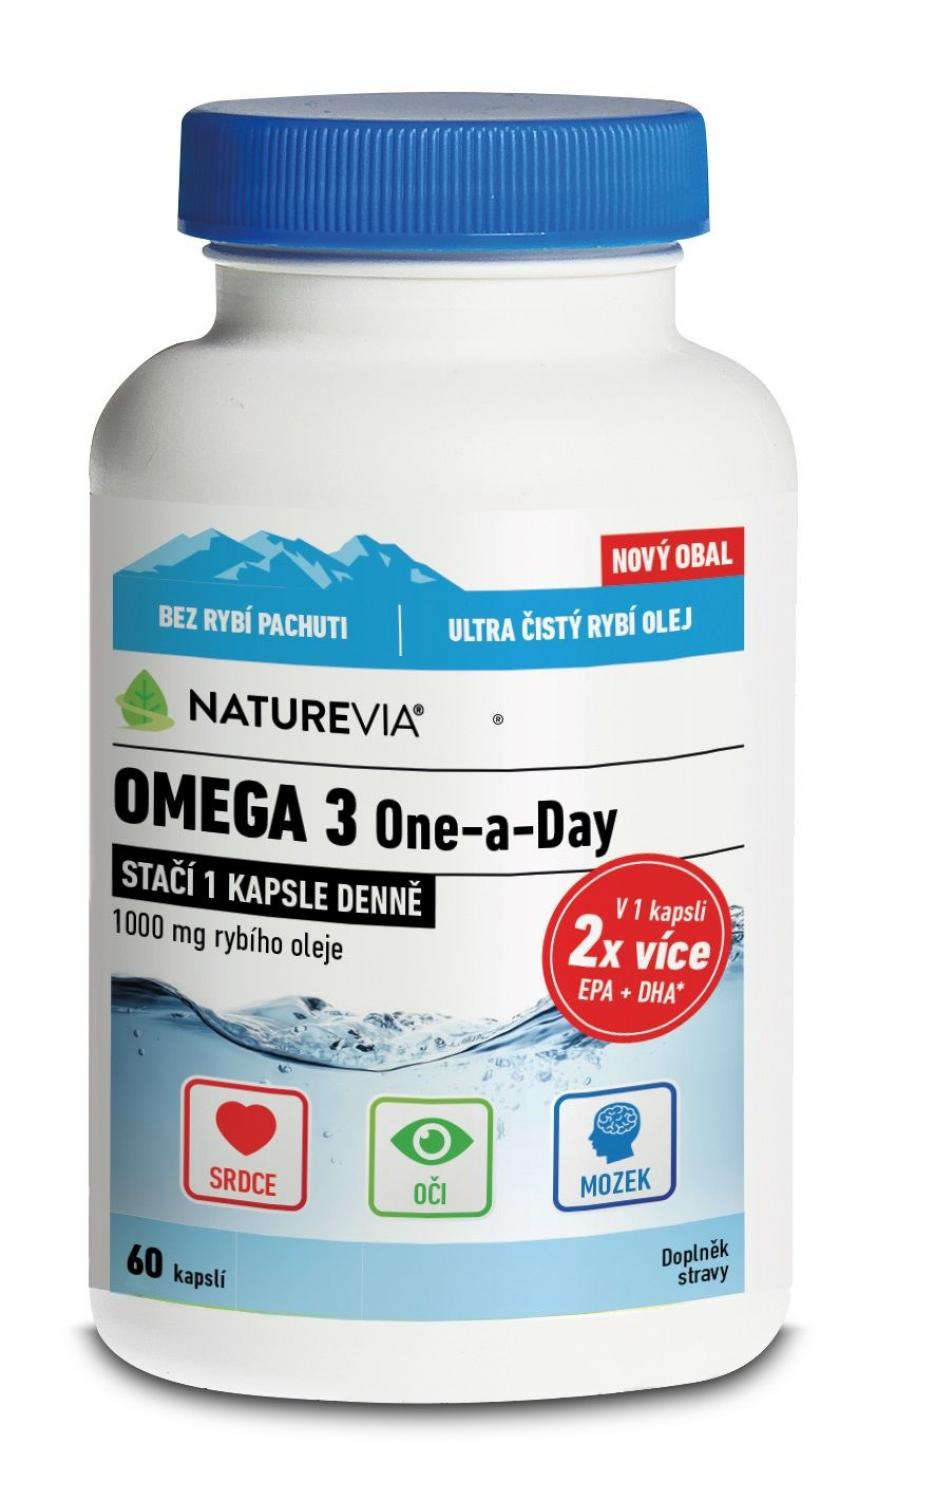 Naturevia Omega 3 One-a-Day Foto: Naturevia